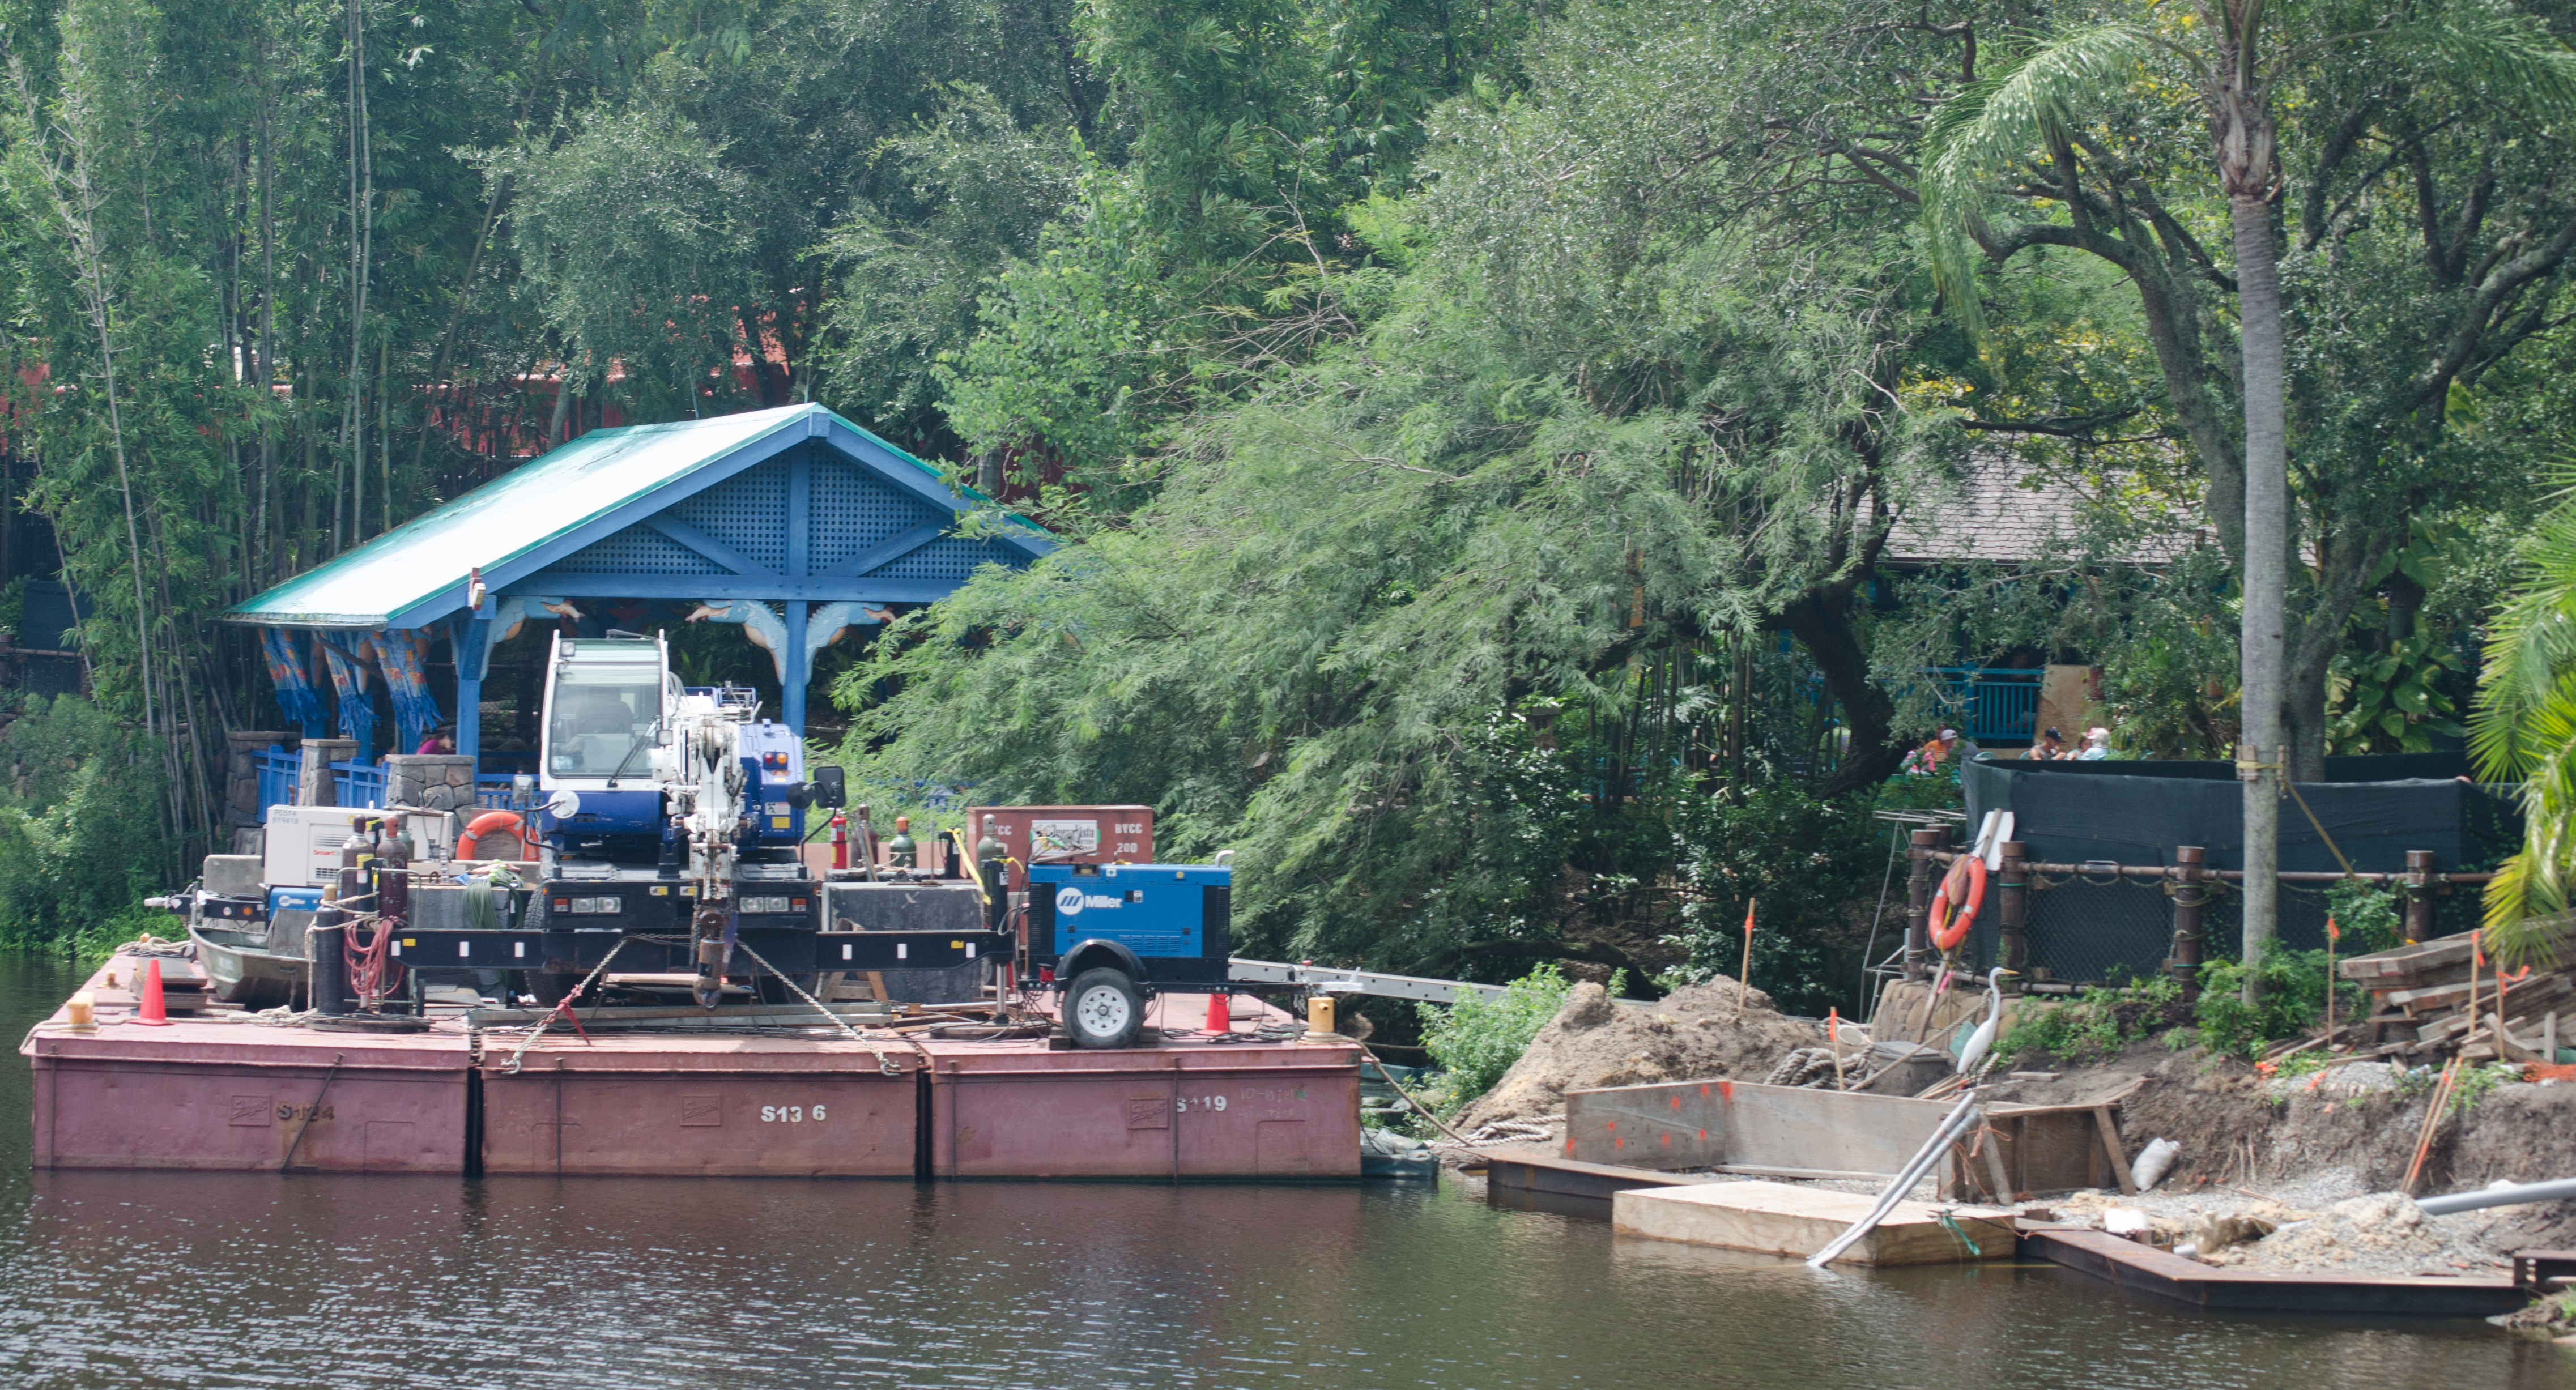 AnimalKingdom_08292015-23